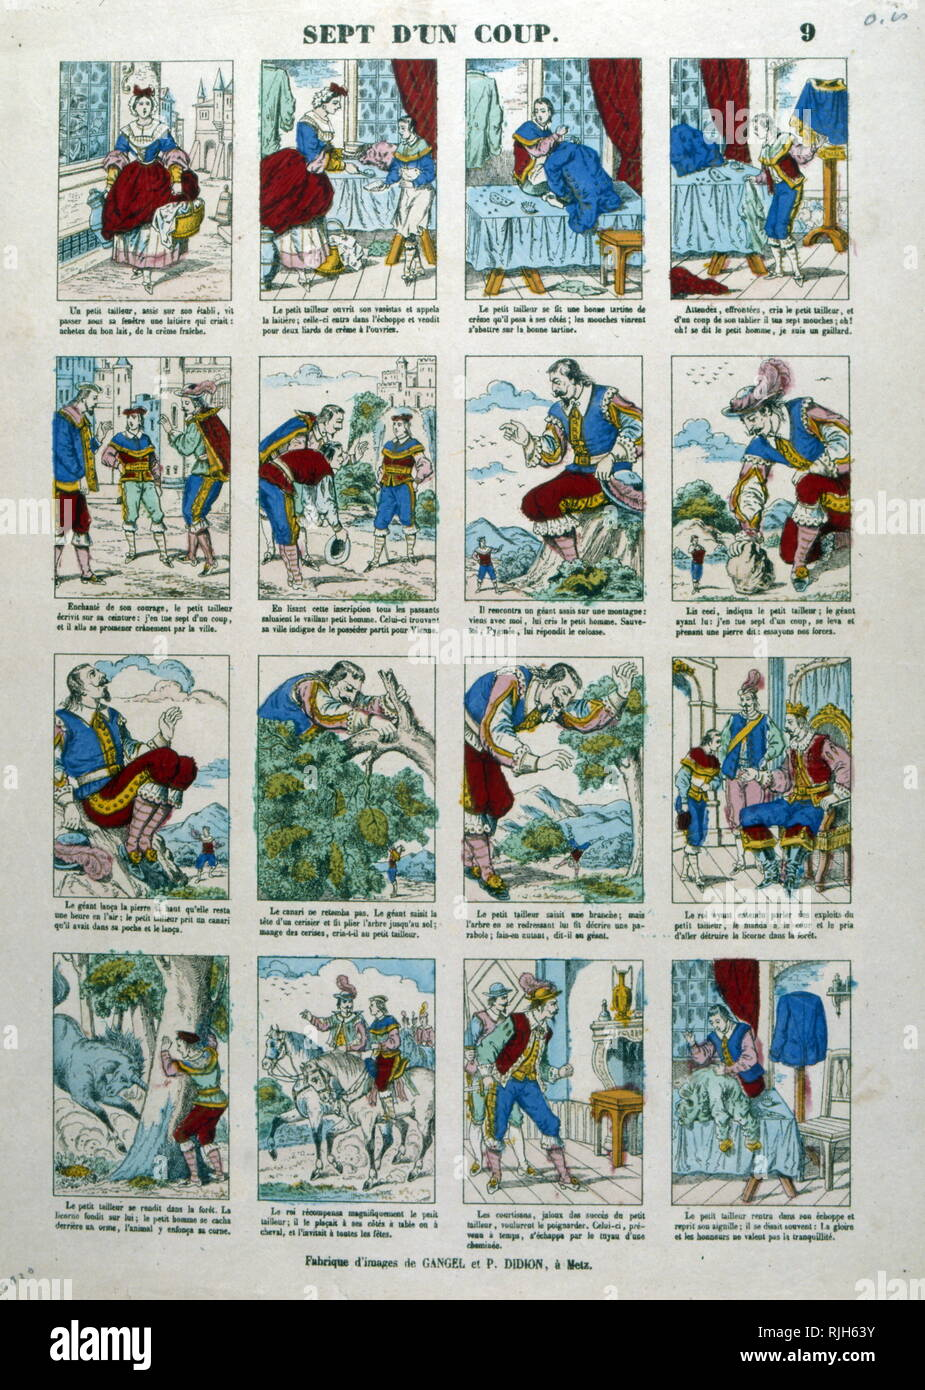 The Vaillant Little Tailor; German folk tale that is among those collected by the Brothers Grimm in the first volume of Tales of childhood.; a series of 'Epinal images created by Imagerie Pellerin; France 1860. Jean-Charles Pellerin (1756-1836); French draftsman, illustrator and printer. He is famous for the images of epinal which he composed since the Revolution and which he printed himself from 1800. Succeeding his father, he took in 1773 the direction of the 'Factory of Pellerin' 3. From 1796, he expanded his activity and created the 'Imagerie Pellerin'. As early as 1800, he started a small - Stock Image